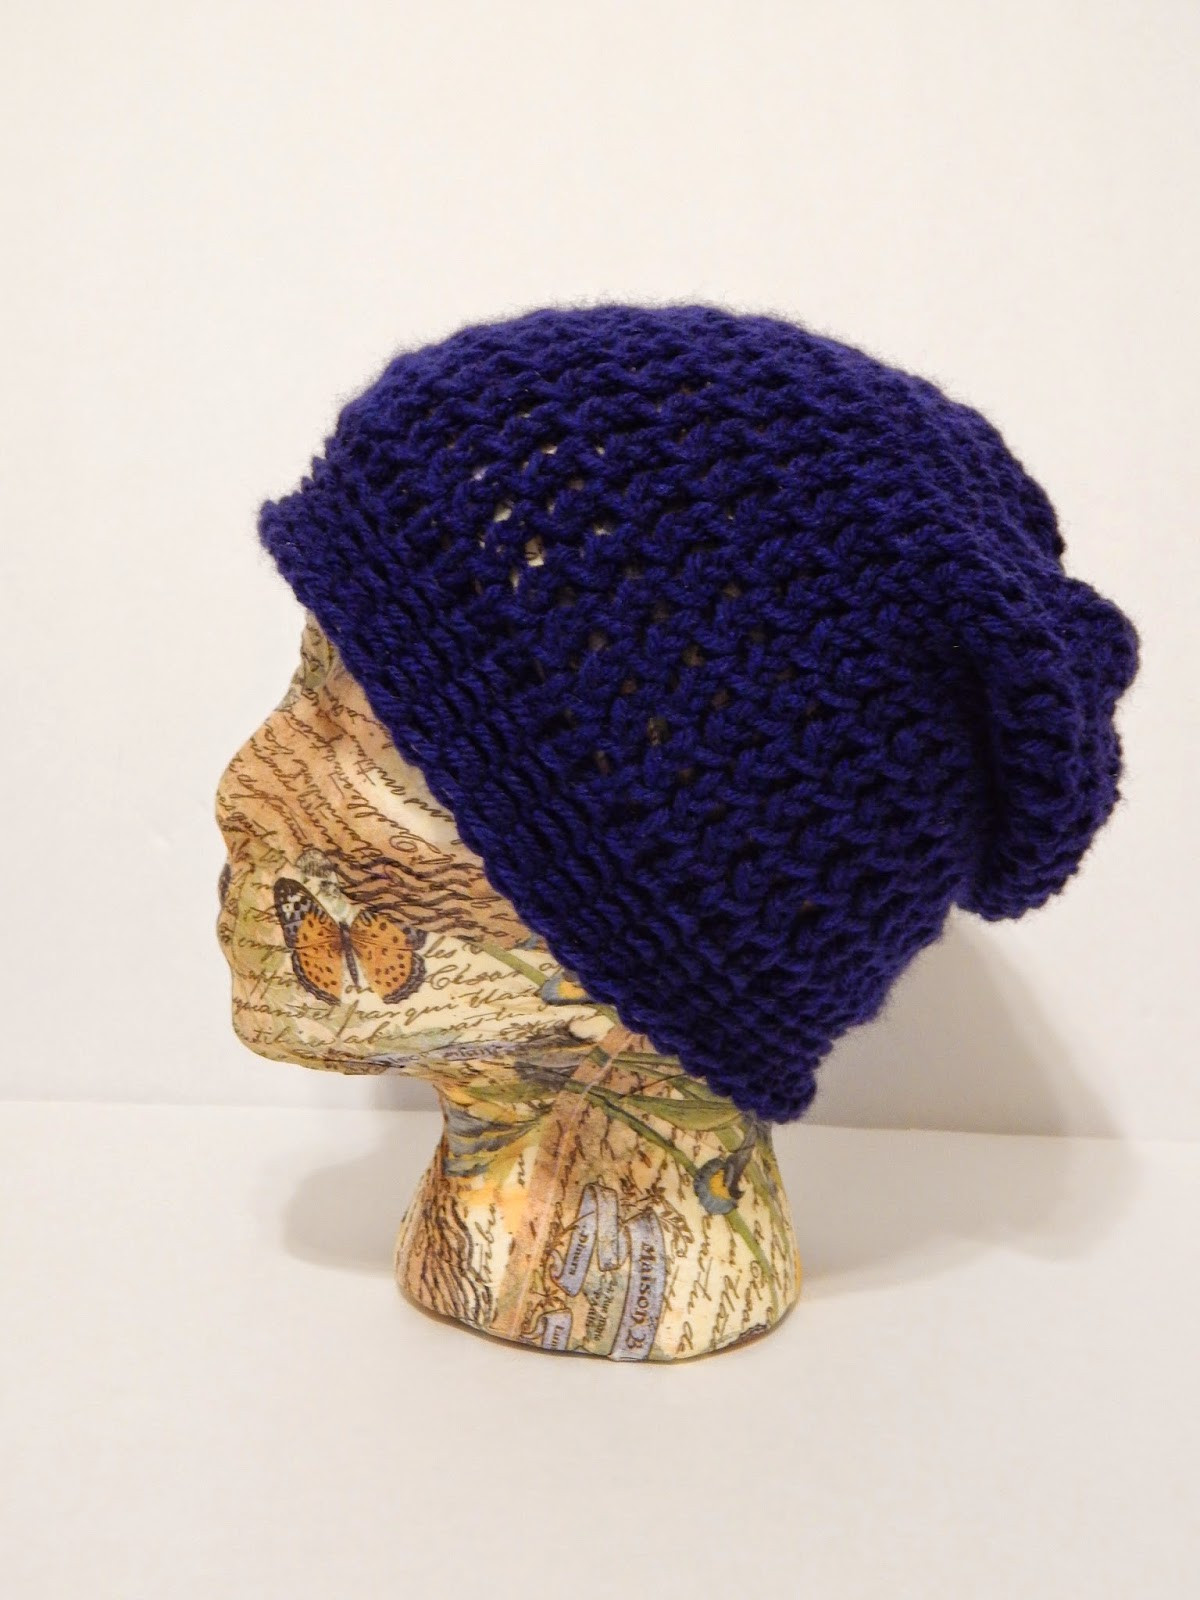 Jovial Knits Loom Knit Slouchy Hat Bea s Easy Beanie